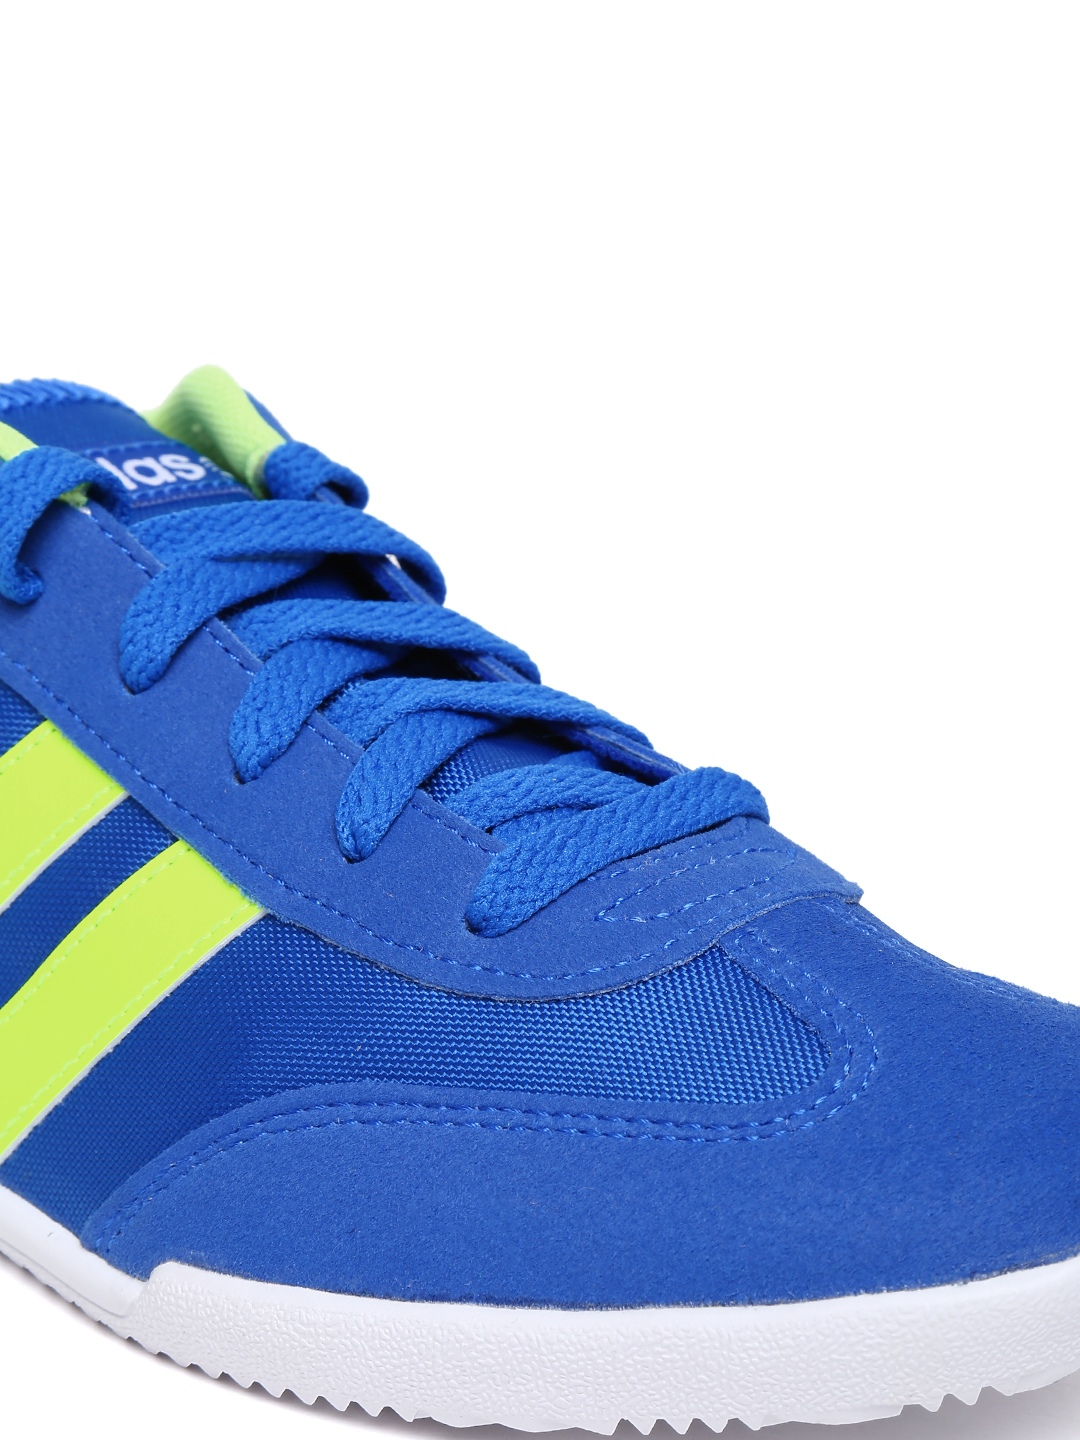 adidas neo blue shoes